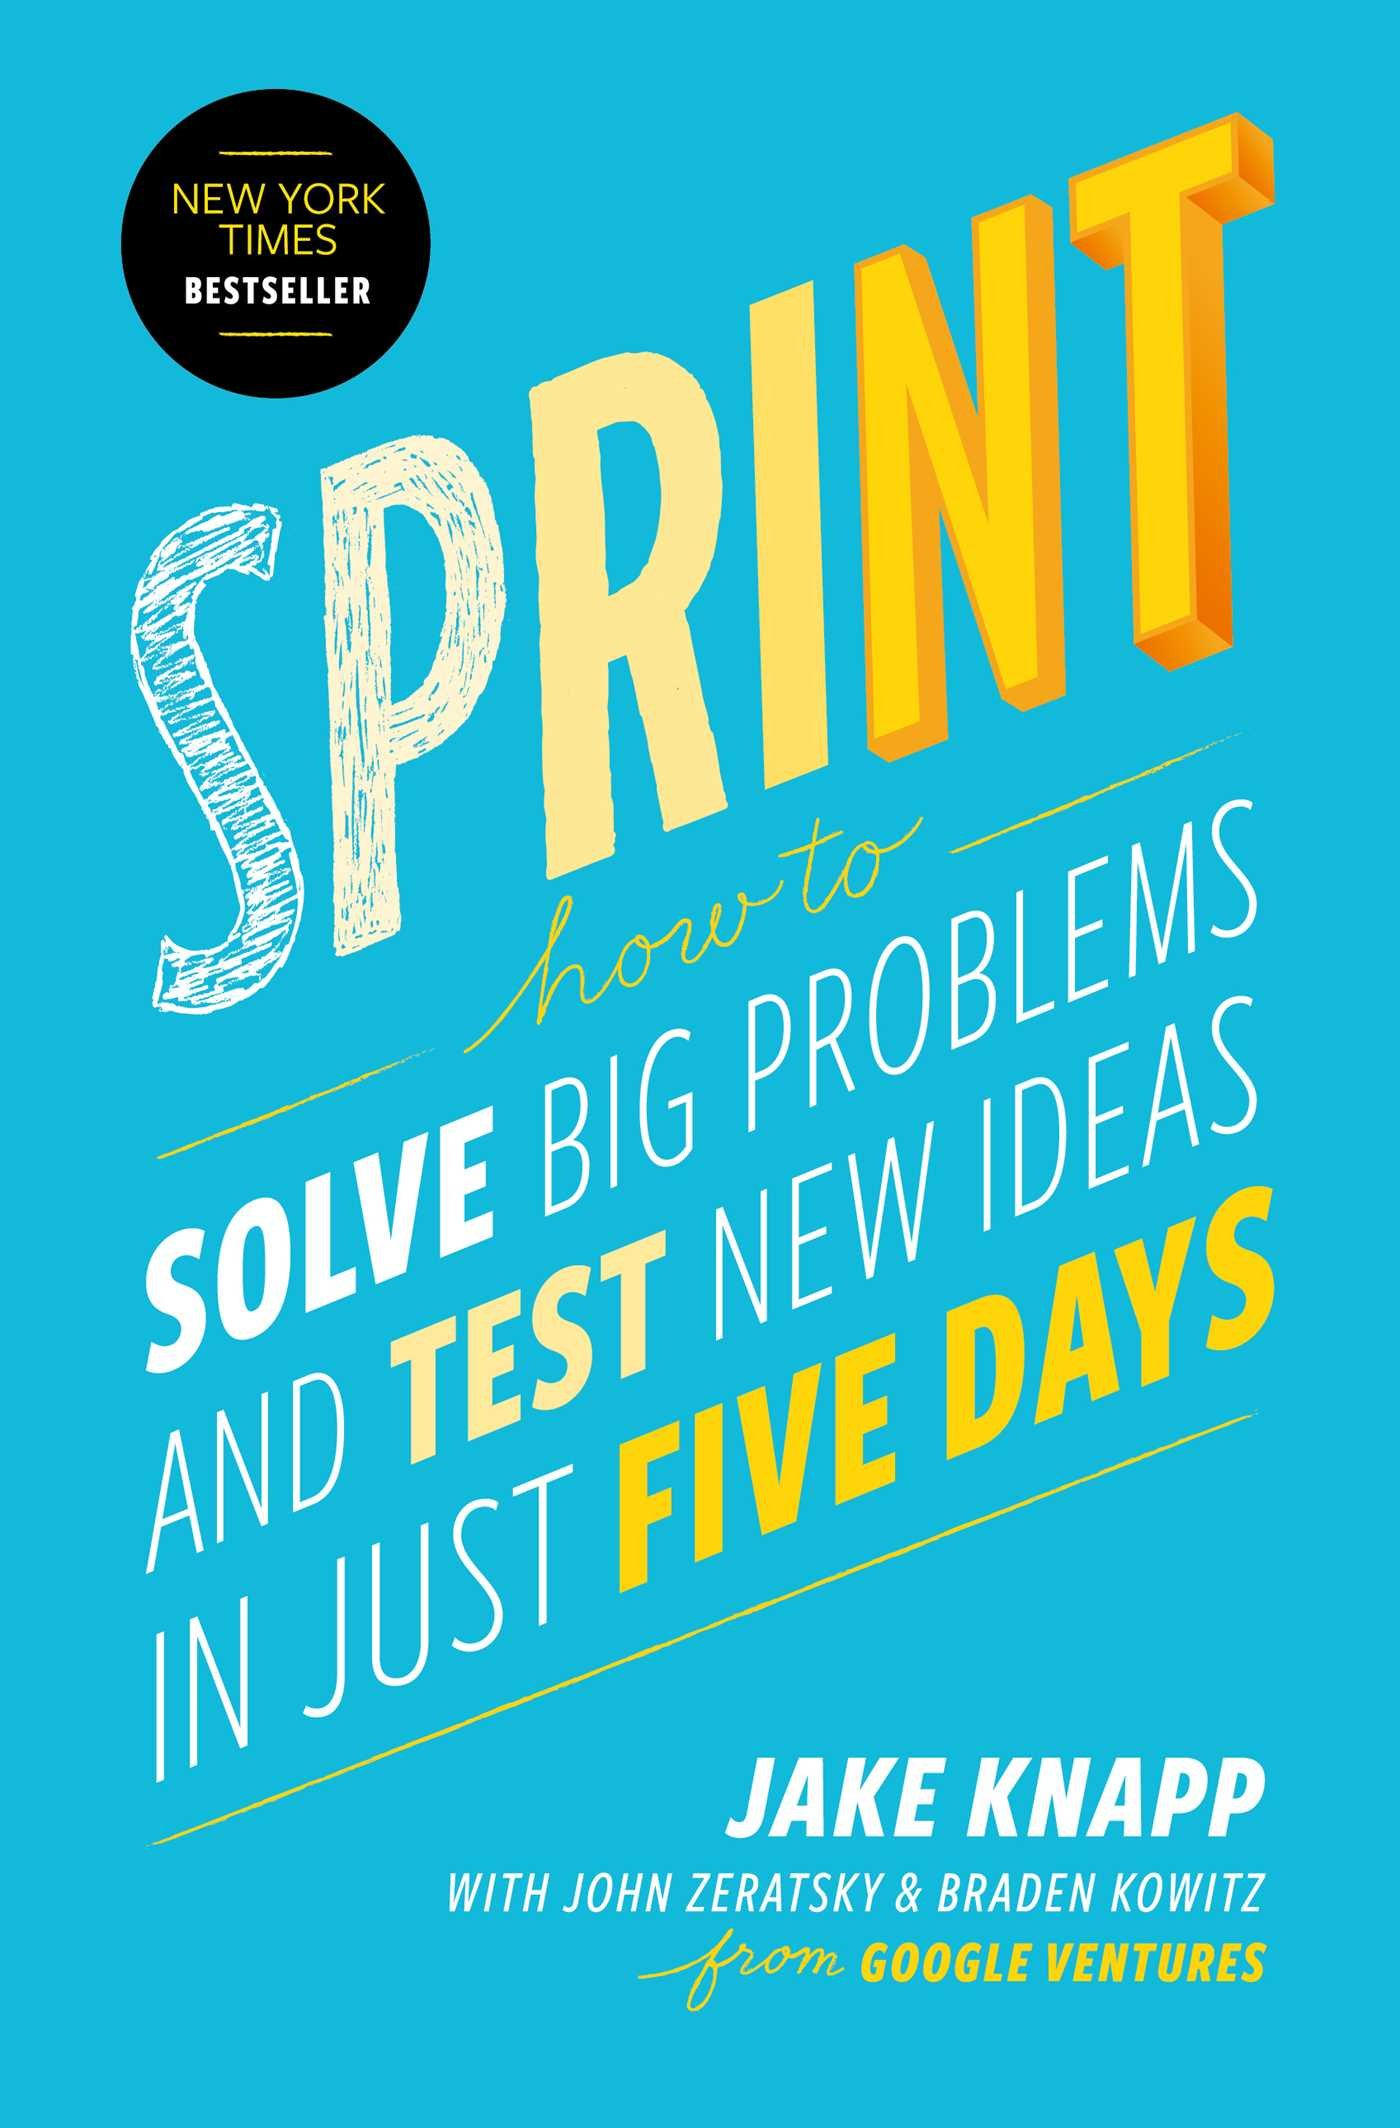 Summer reading - Sprint